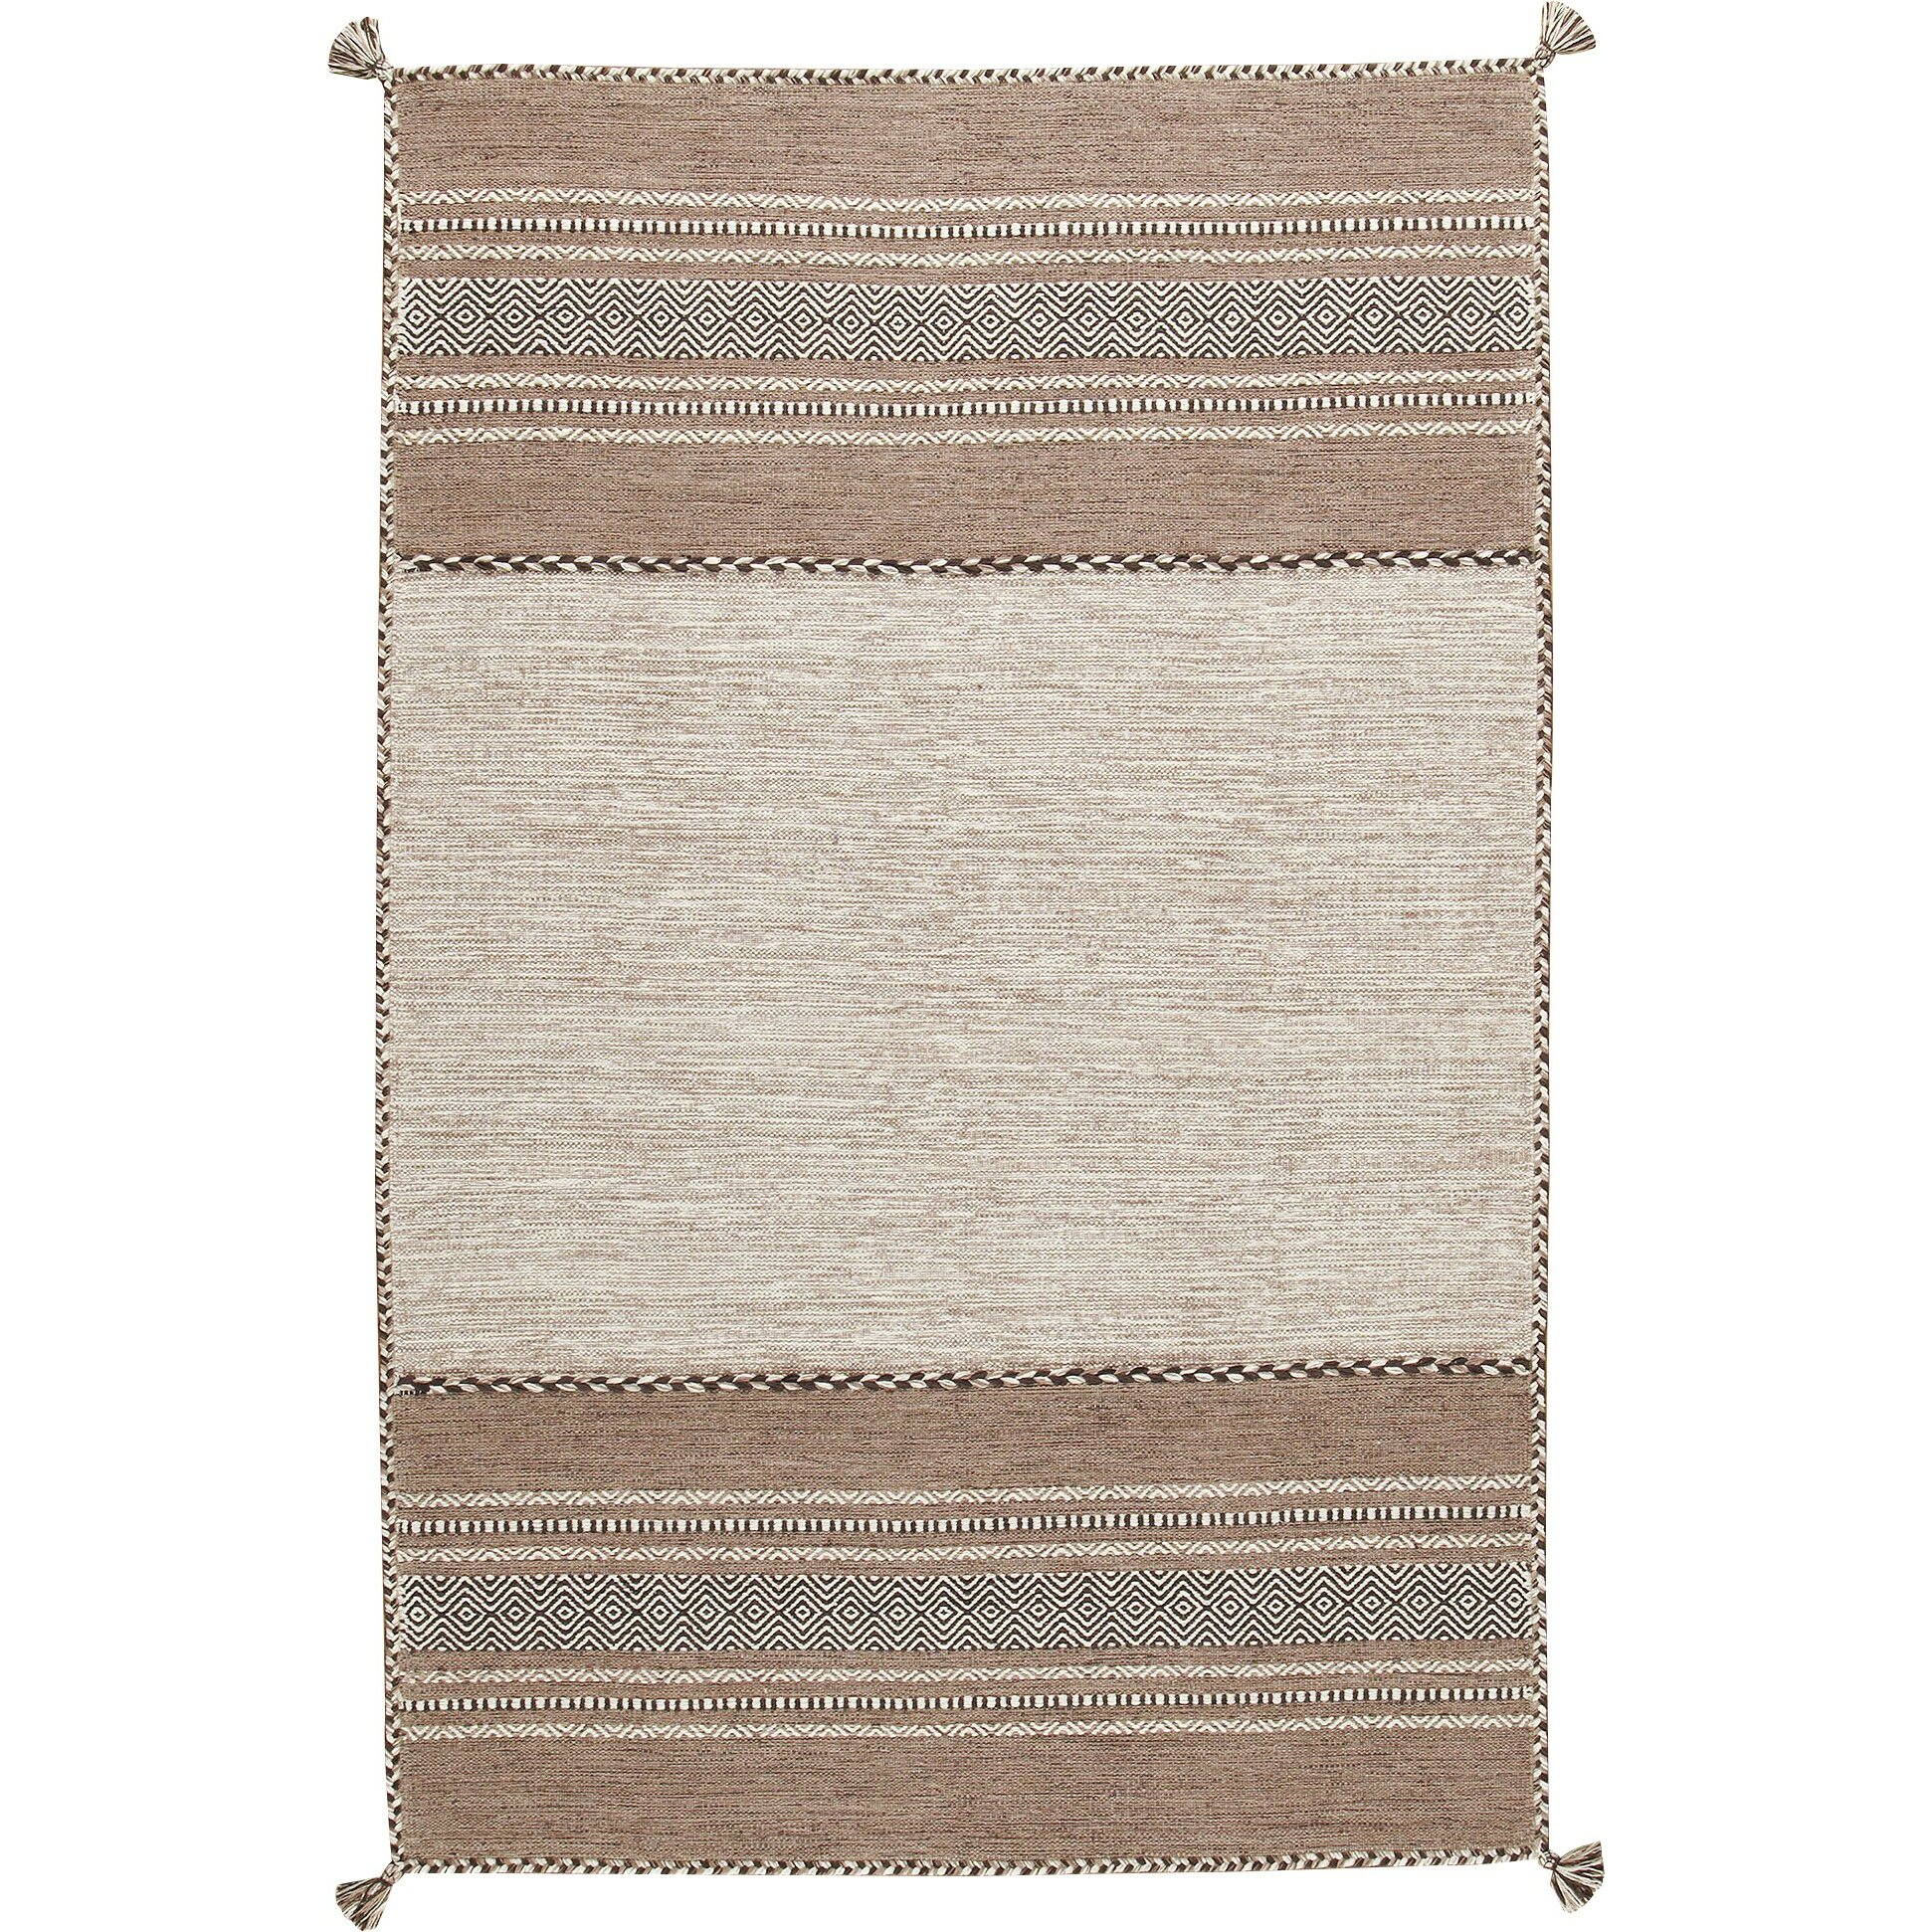 Gray Taupe And White Bedroom Curatins: DwellStudio Gray/Taupe Area Rug & Reviews